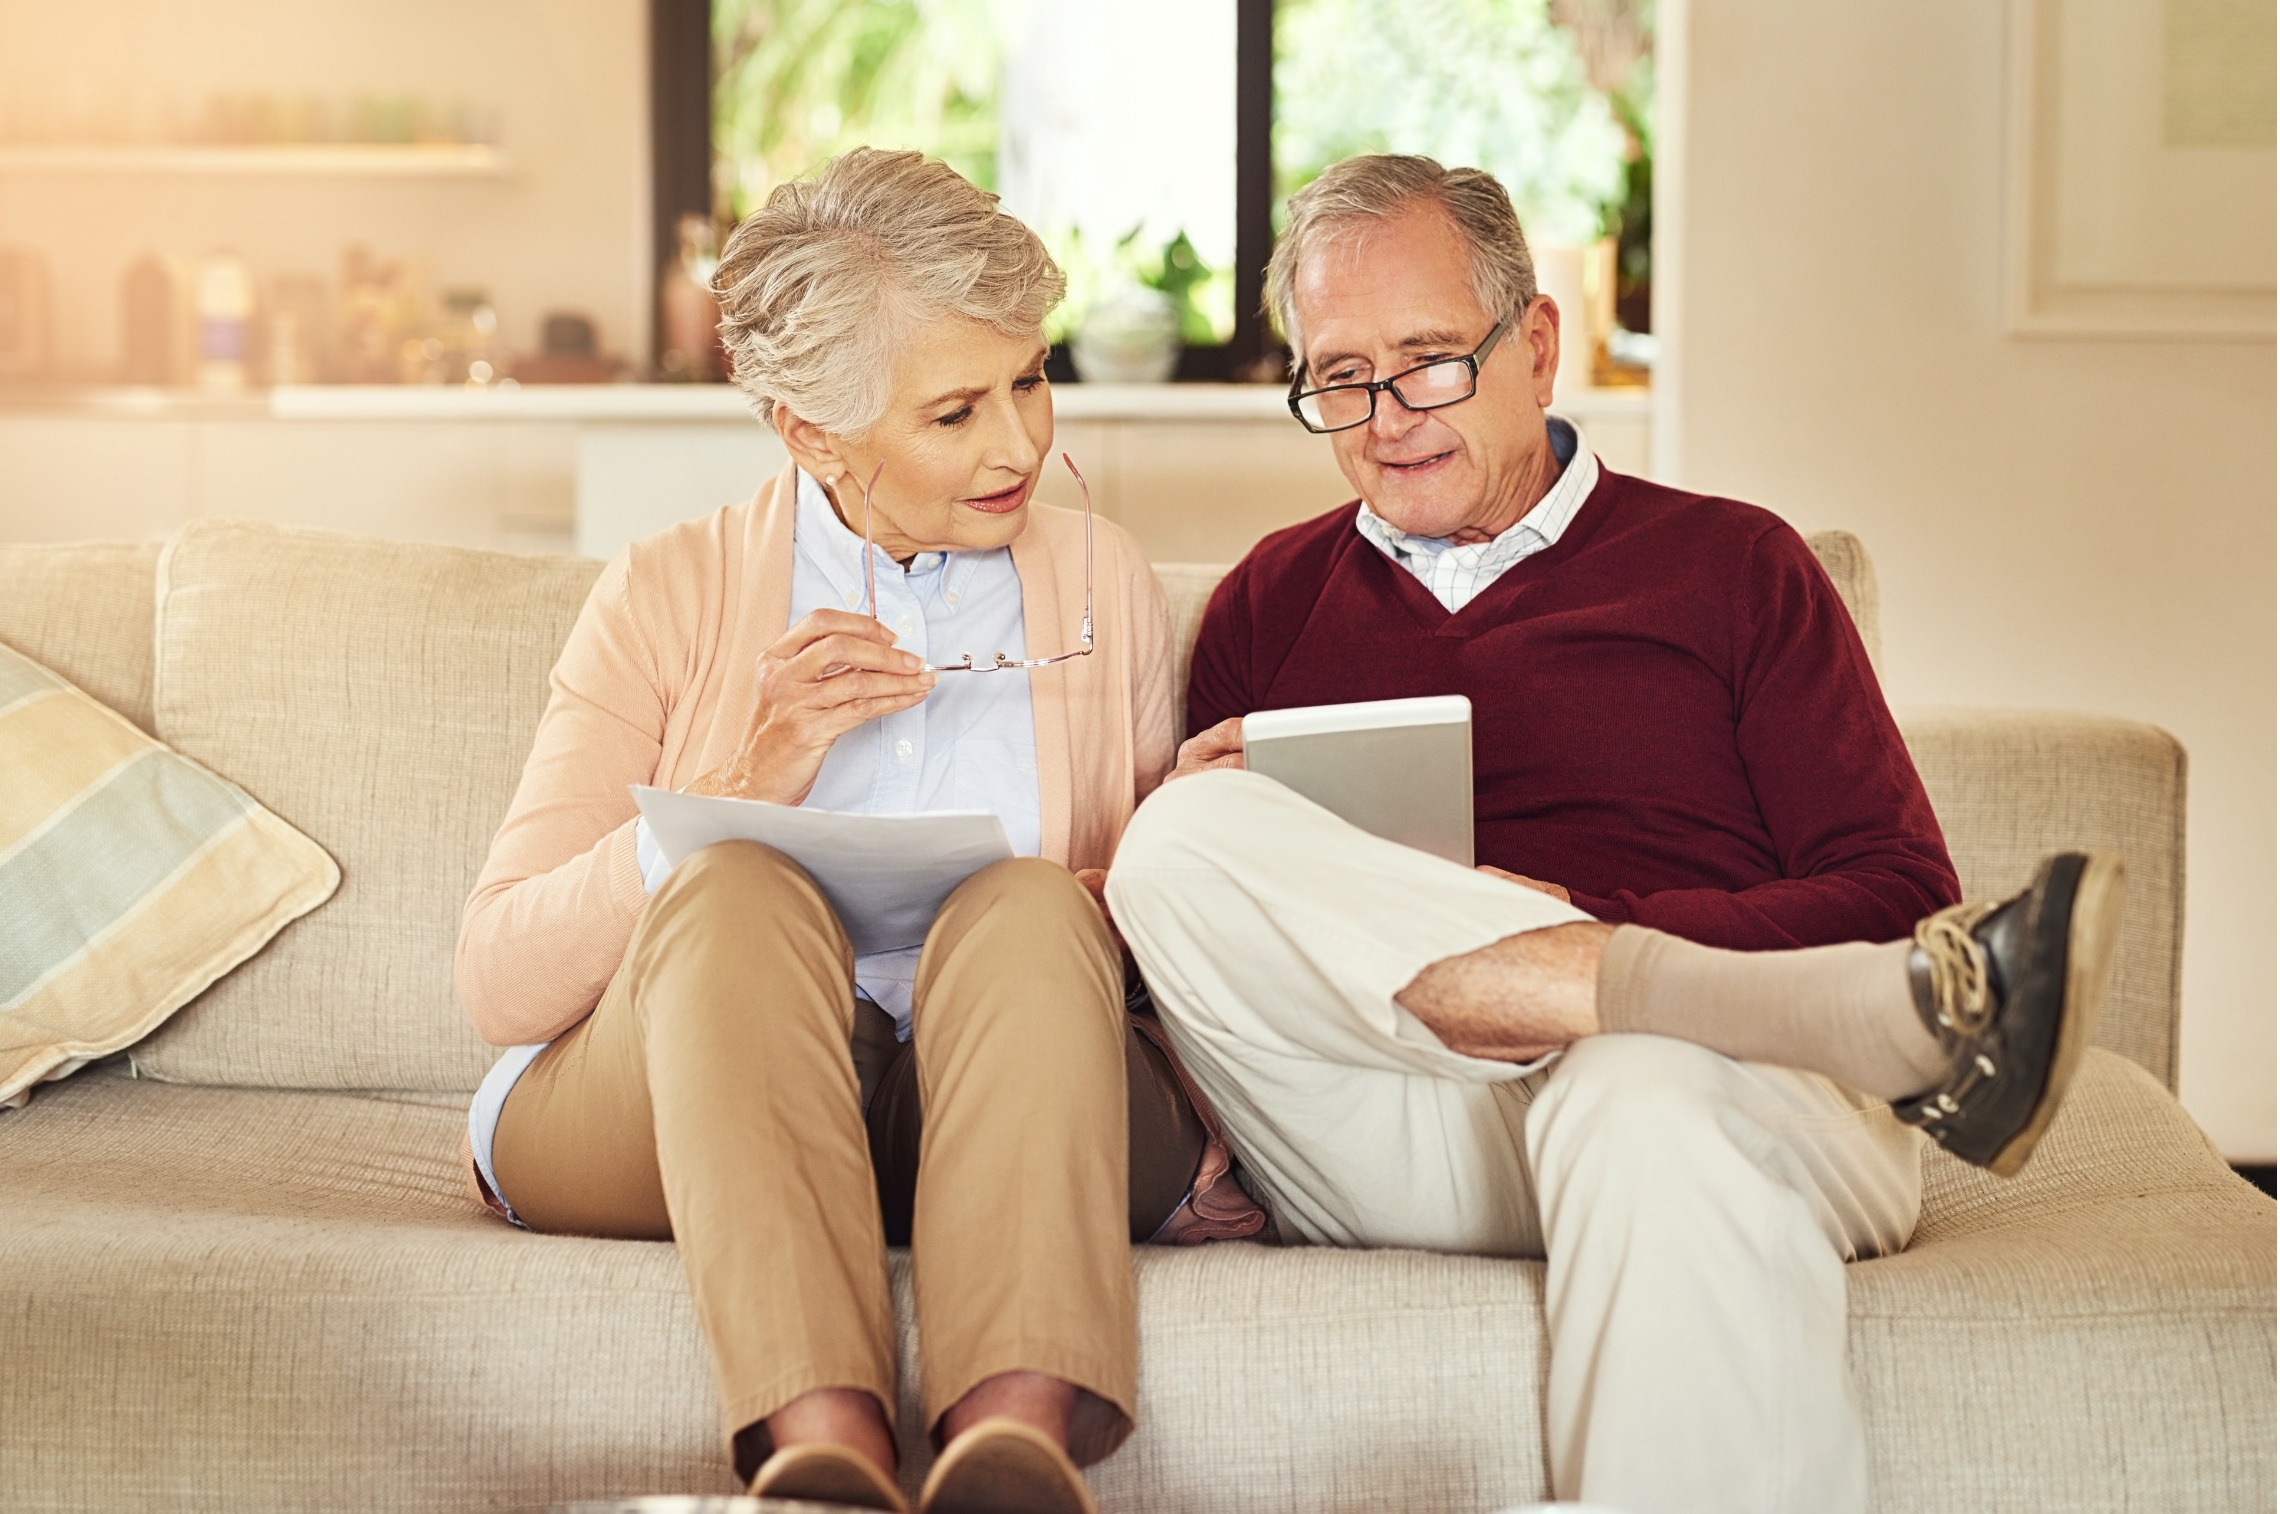 3 Simple Tips for Pre-Retirement Planning & Saving